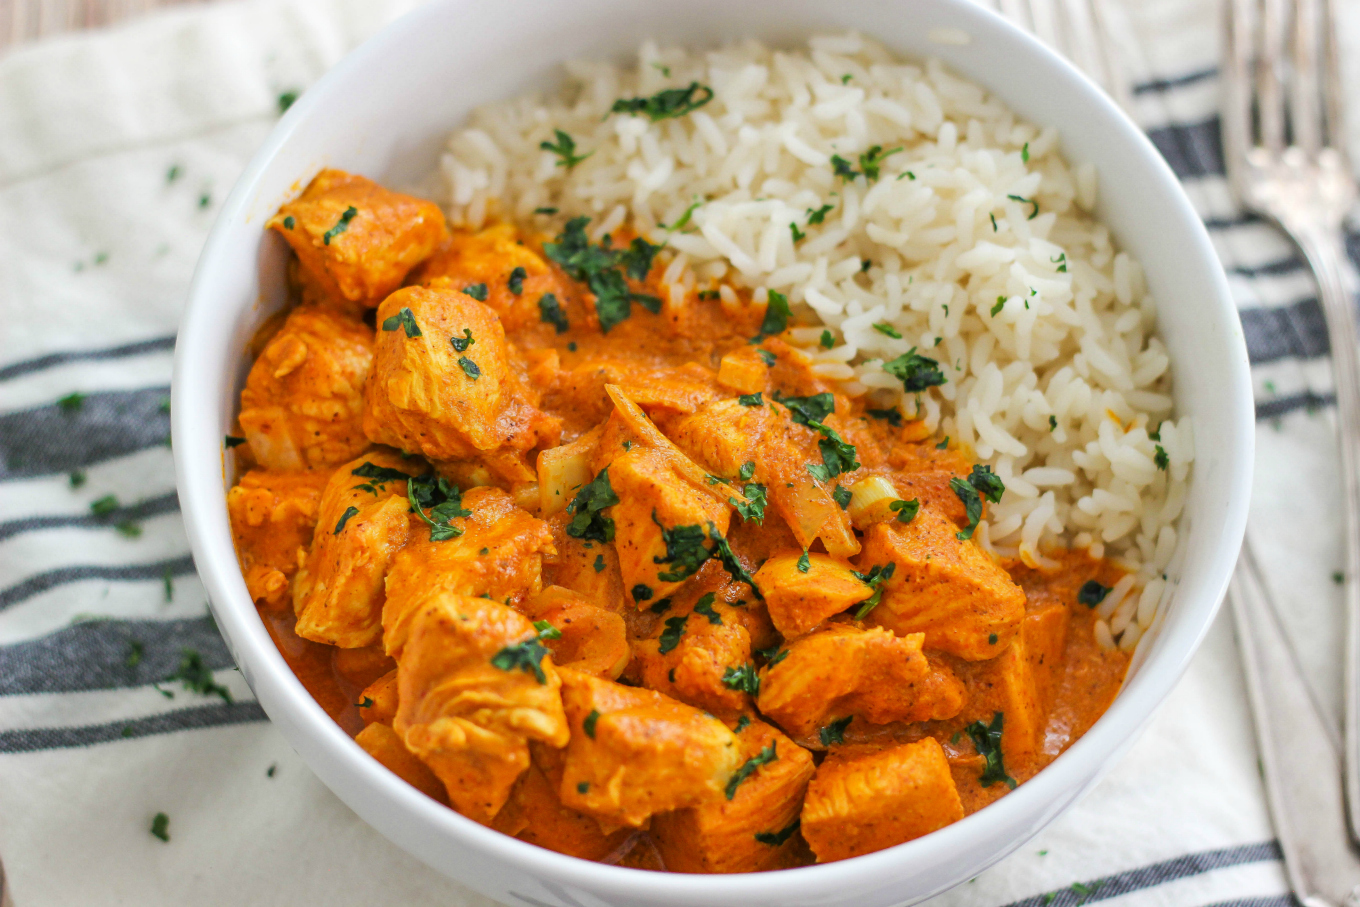 Easy Slow Cooker Butter Chicken is a flavorful Indian chicken dish cooked in a coconut curry sauce and served with rice. This is a simple weeknight meal.